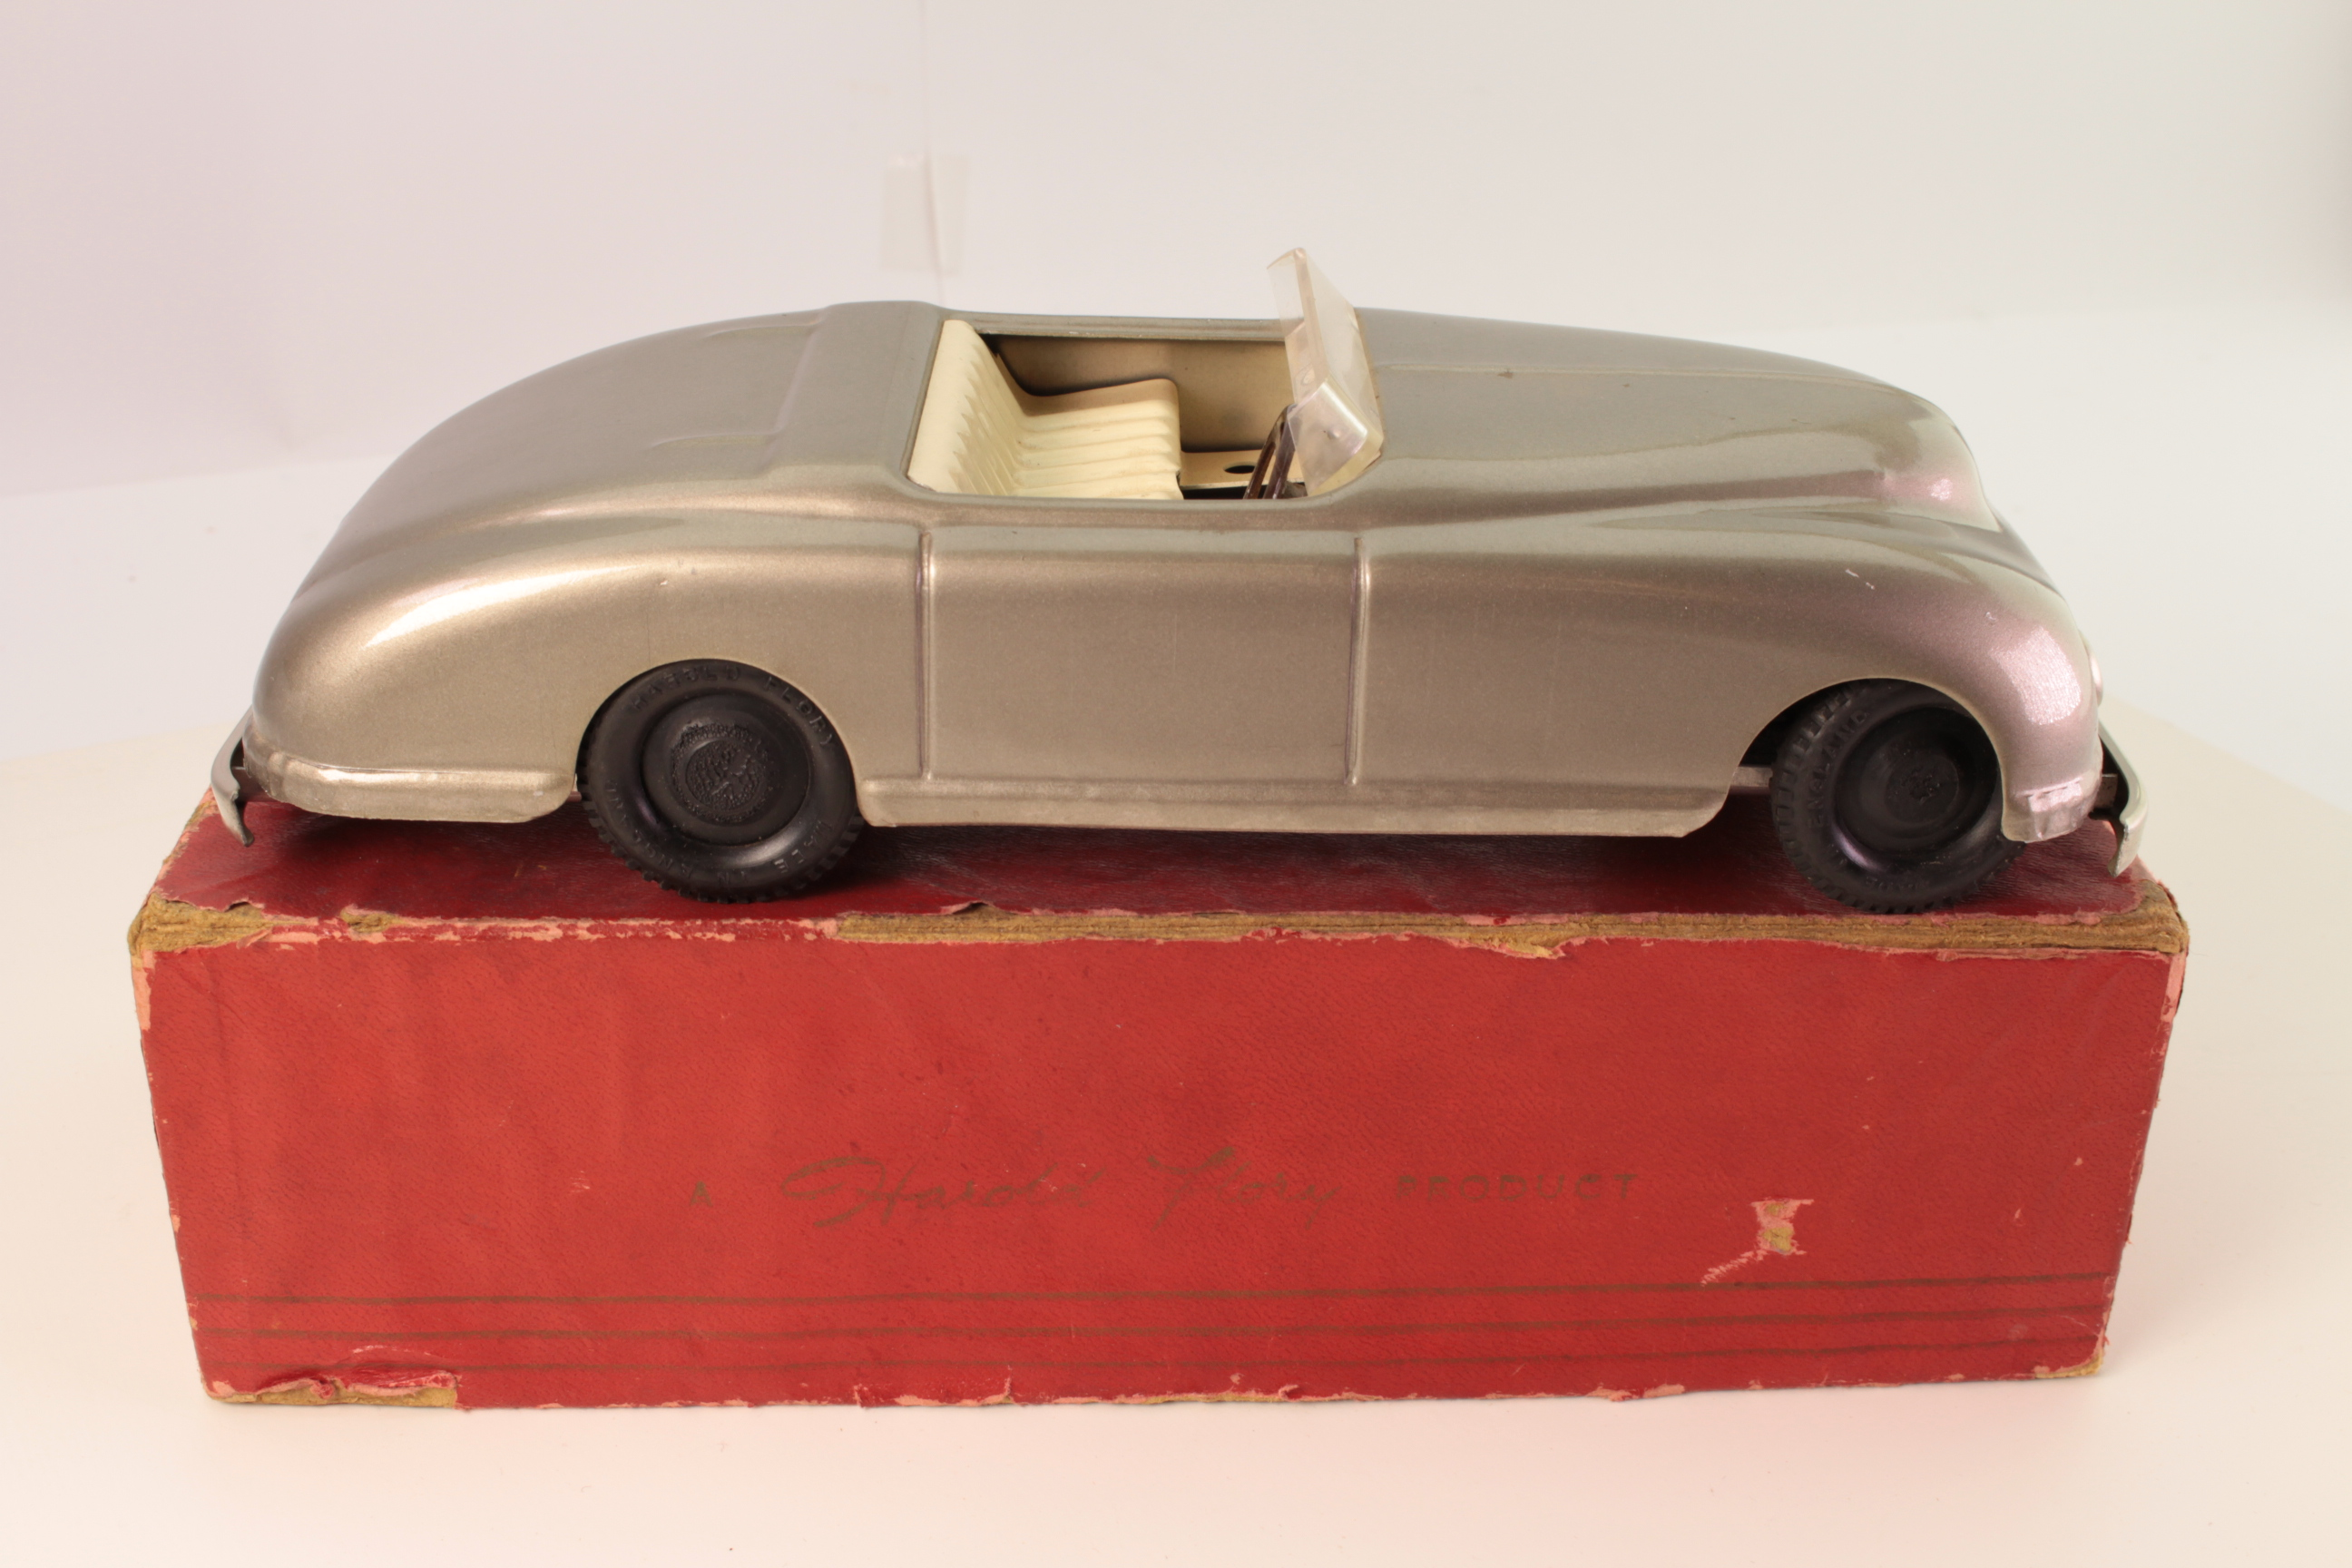 Picture Gallery for Harold Flory 01 Electric Car